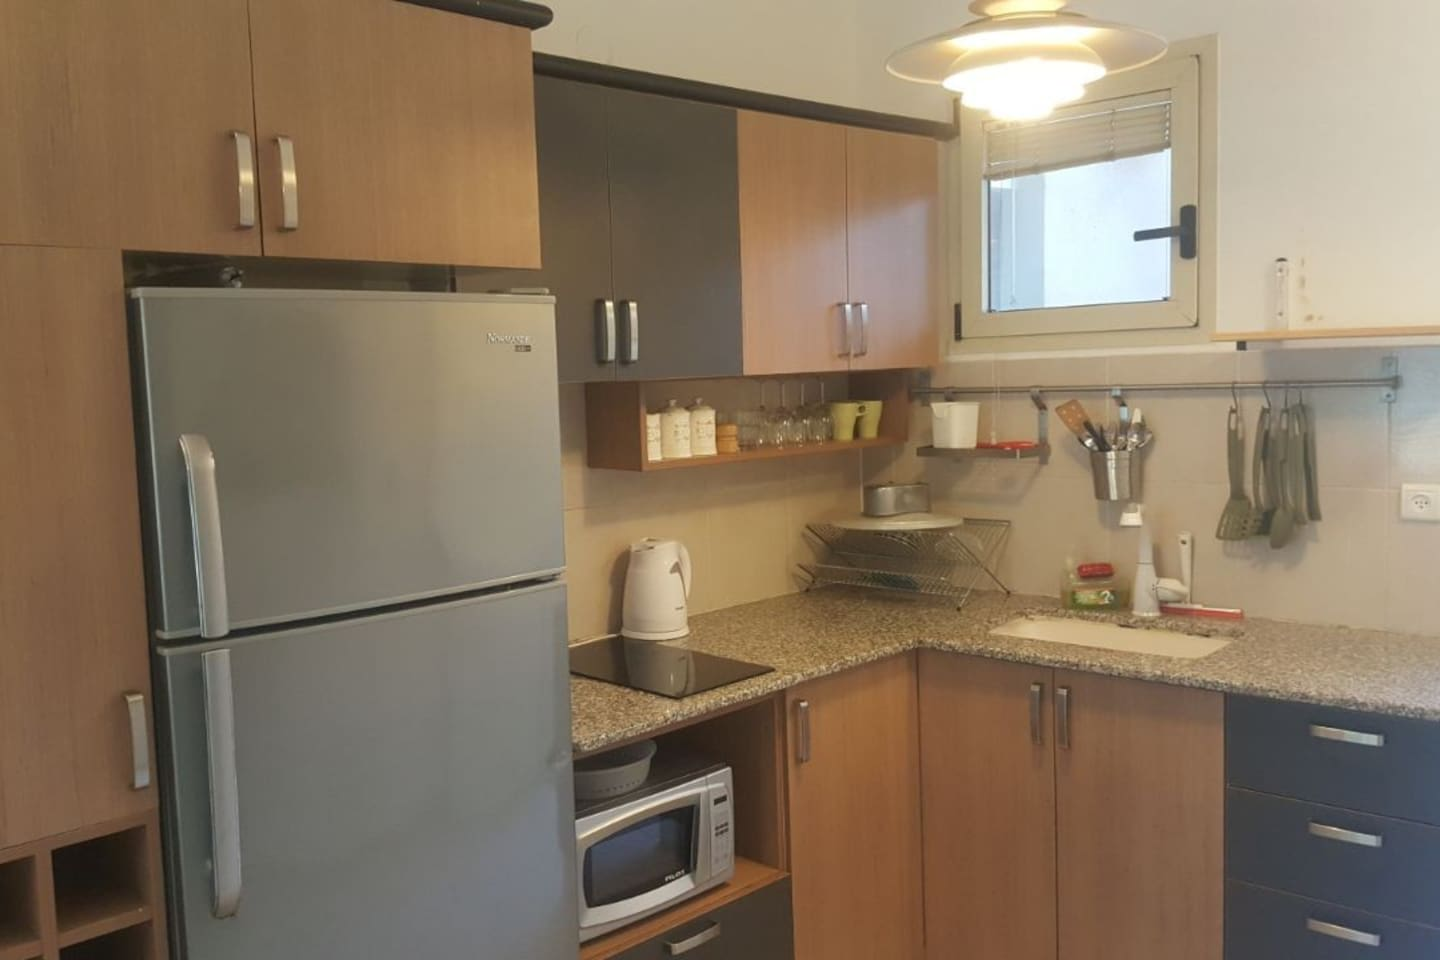 Apartment Great 2 BR Flat right next to the sea in caesarea photo 25977302